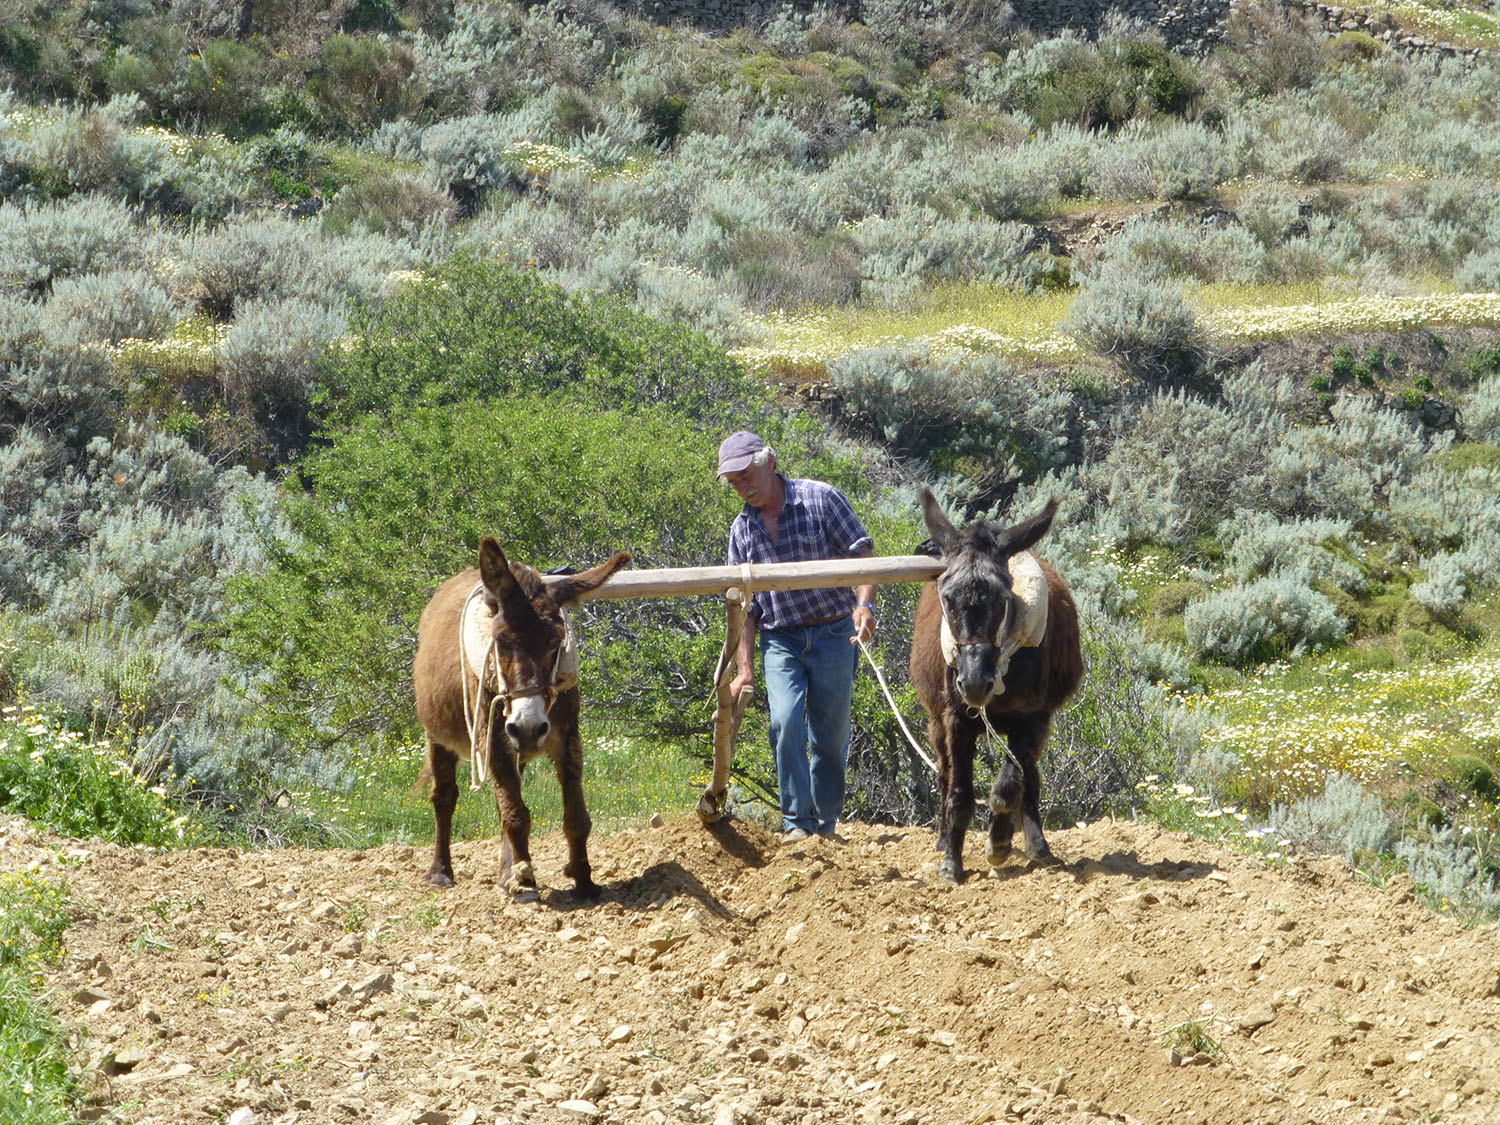 Farmer in Tholaria plows the fields